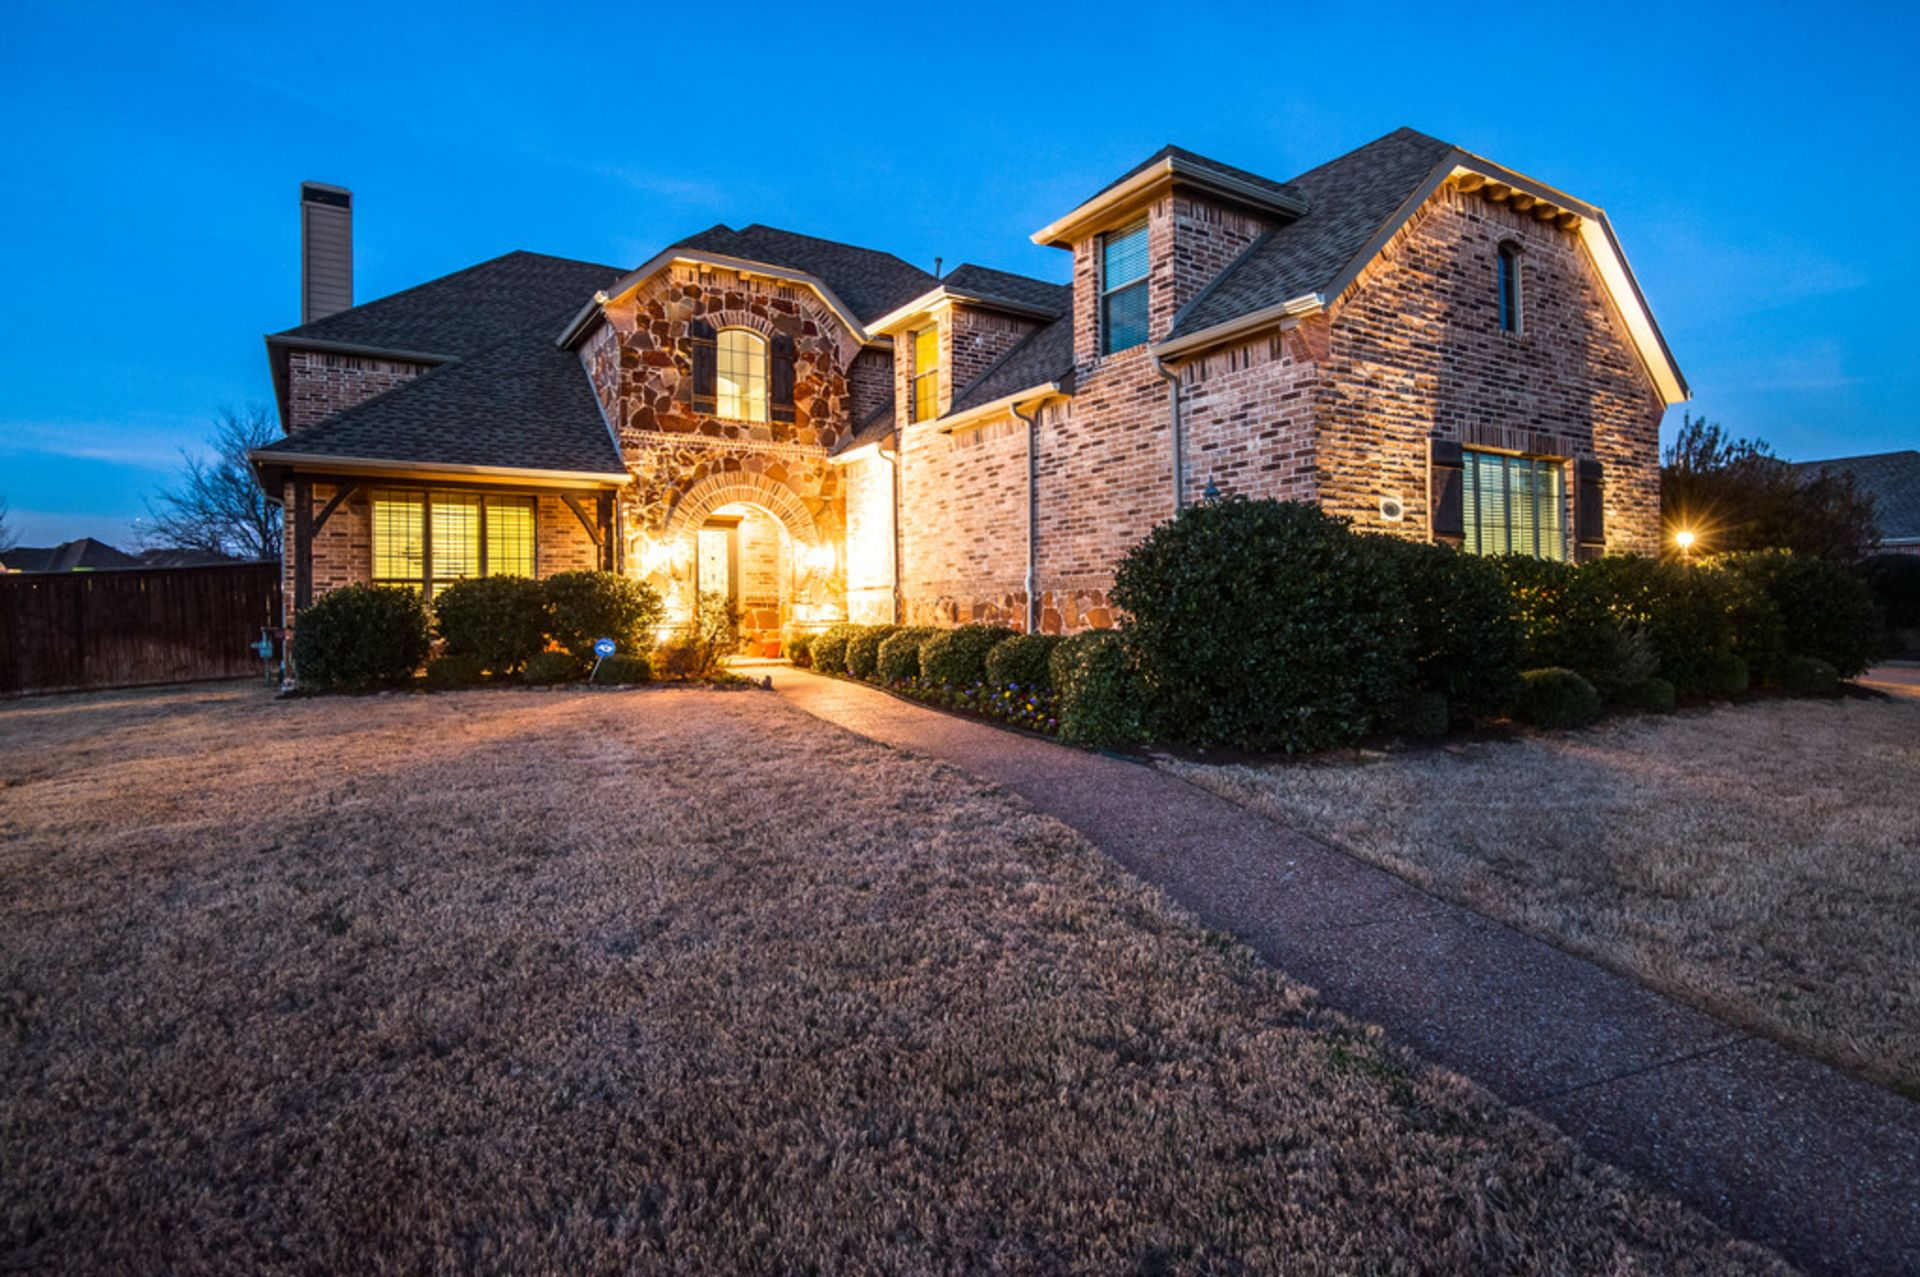 JUST LISTED: 301 Foxcroft Lane in Keller